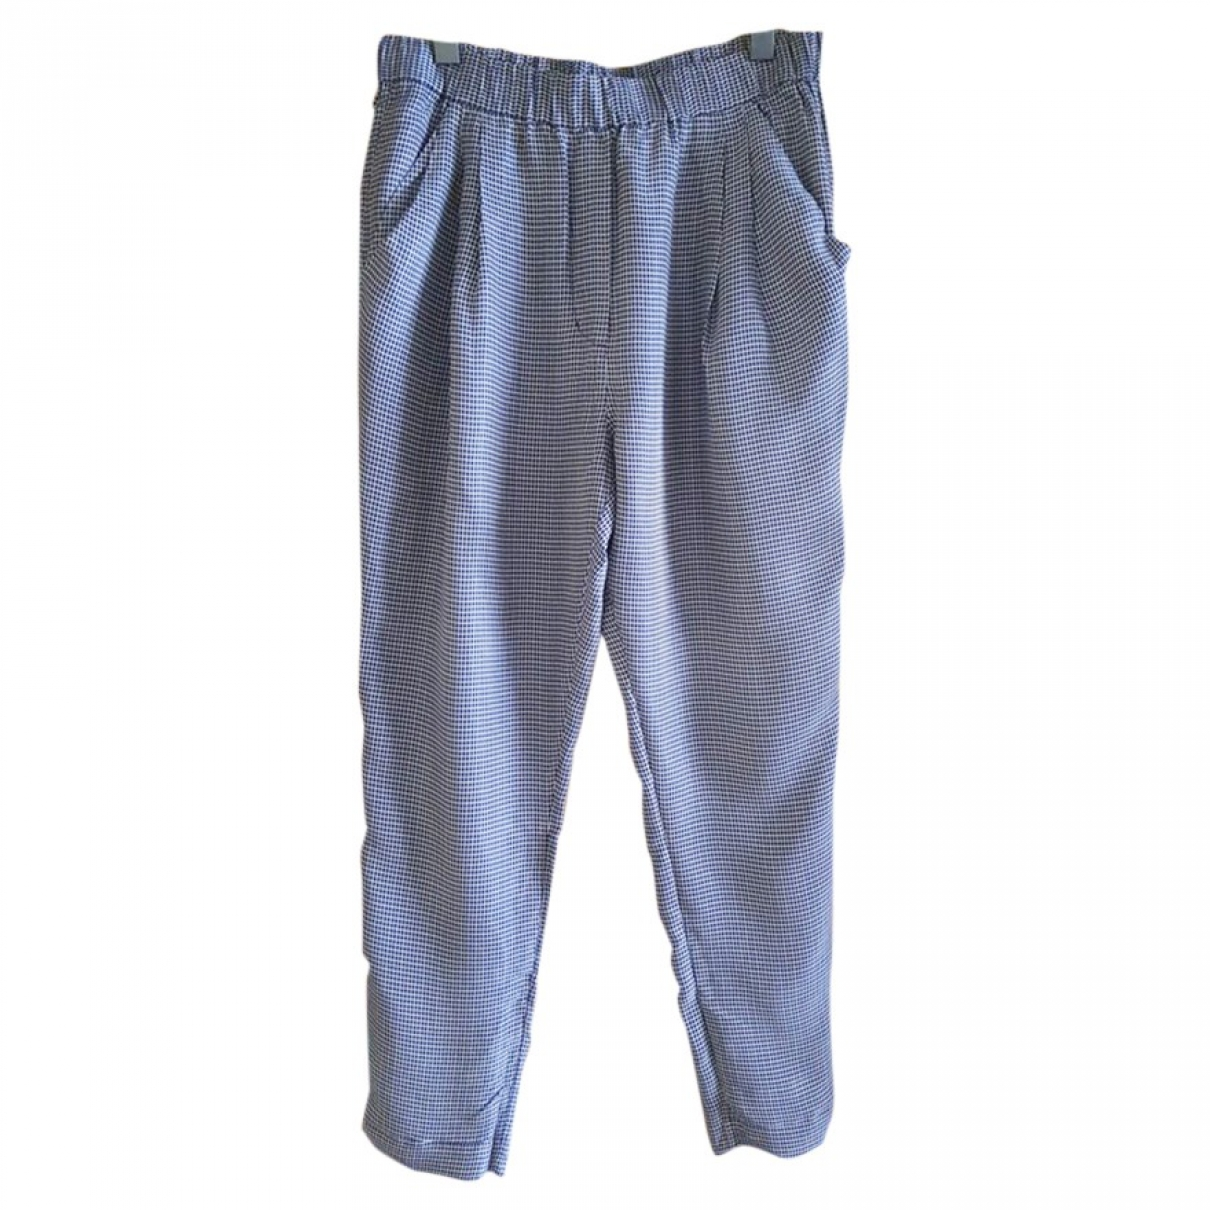 3.1 Phillip Lim \N Blue Trousers for Women 6 US